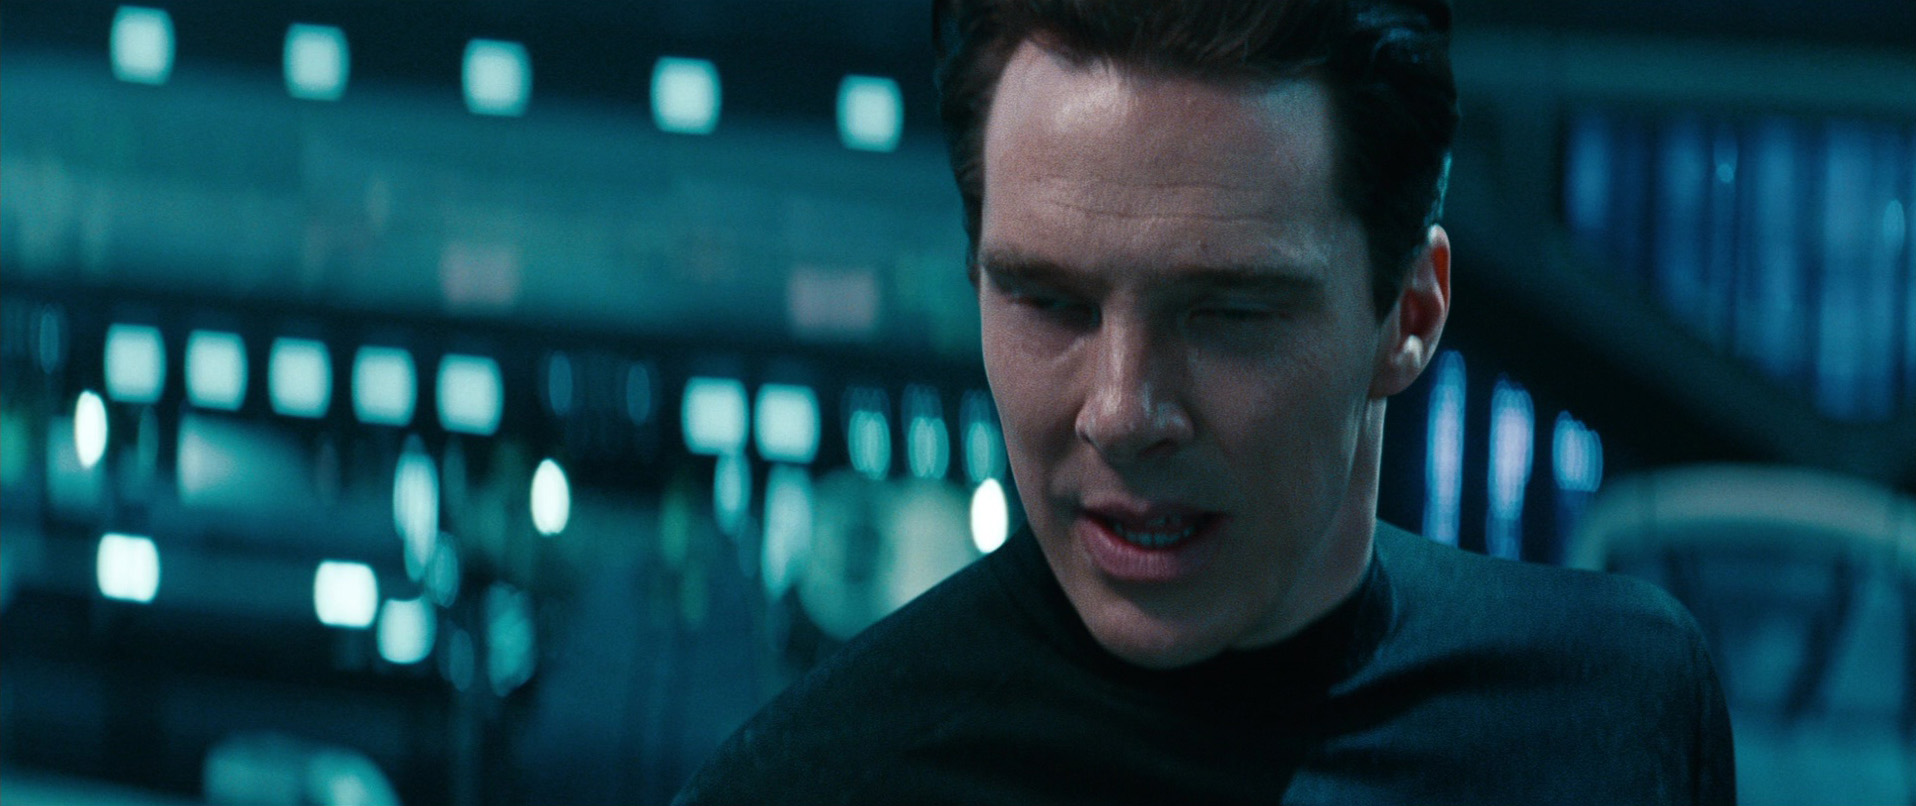 star-trek-into-darkness-hd-1932.jpg